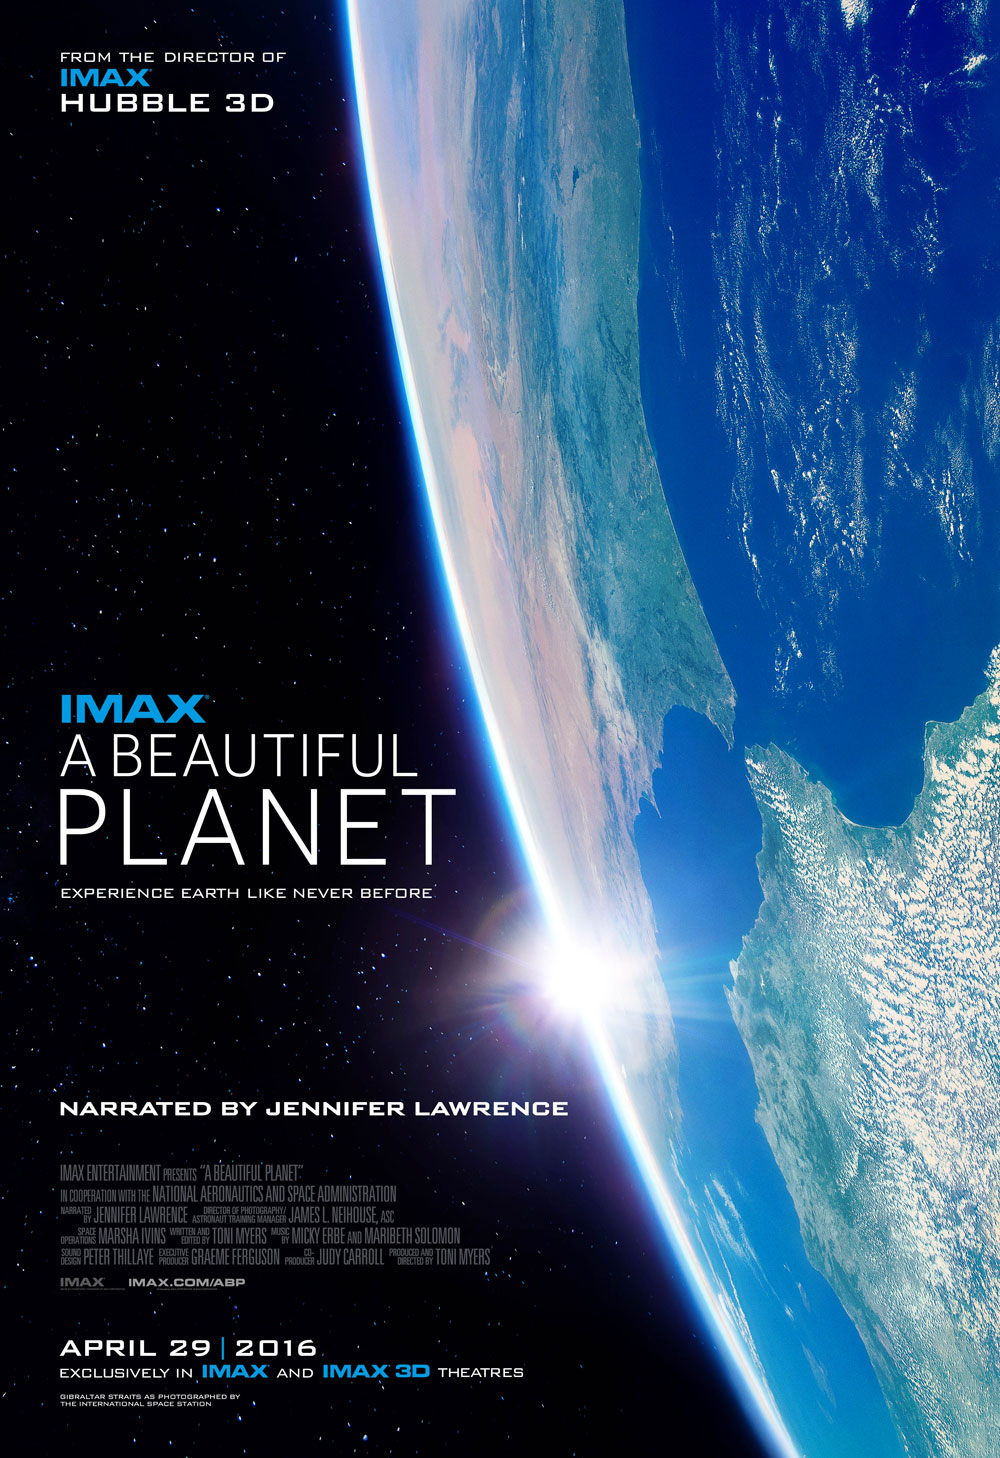 A-beautiful-planet-poster